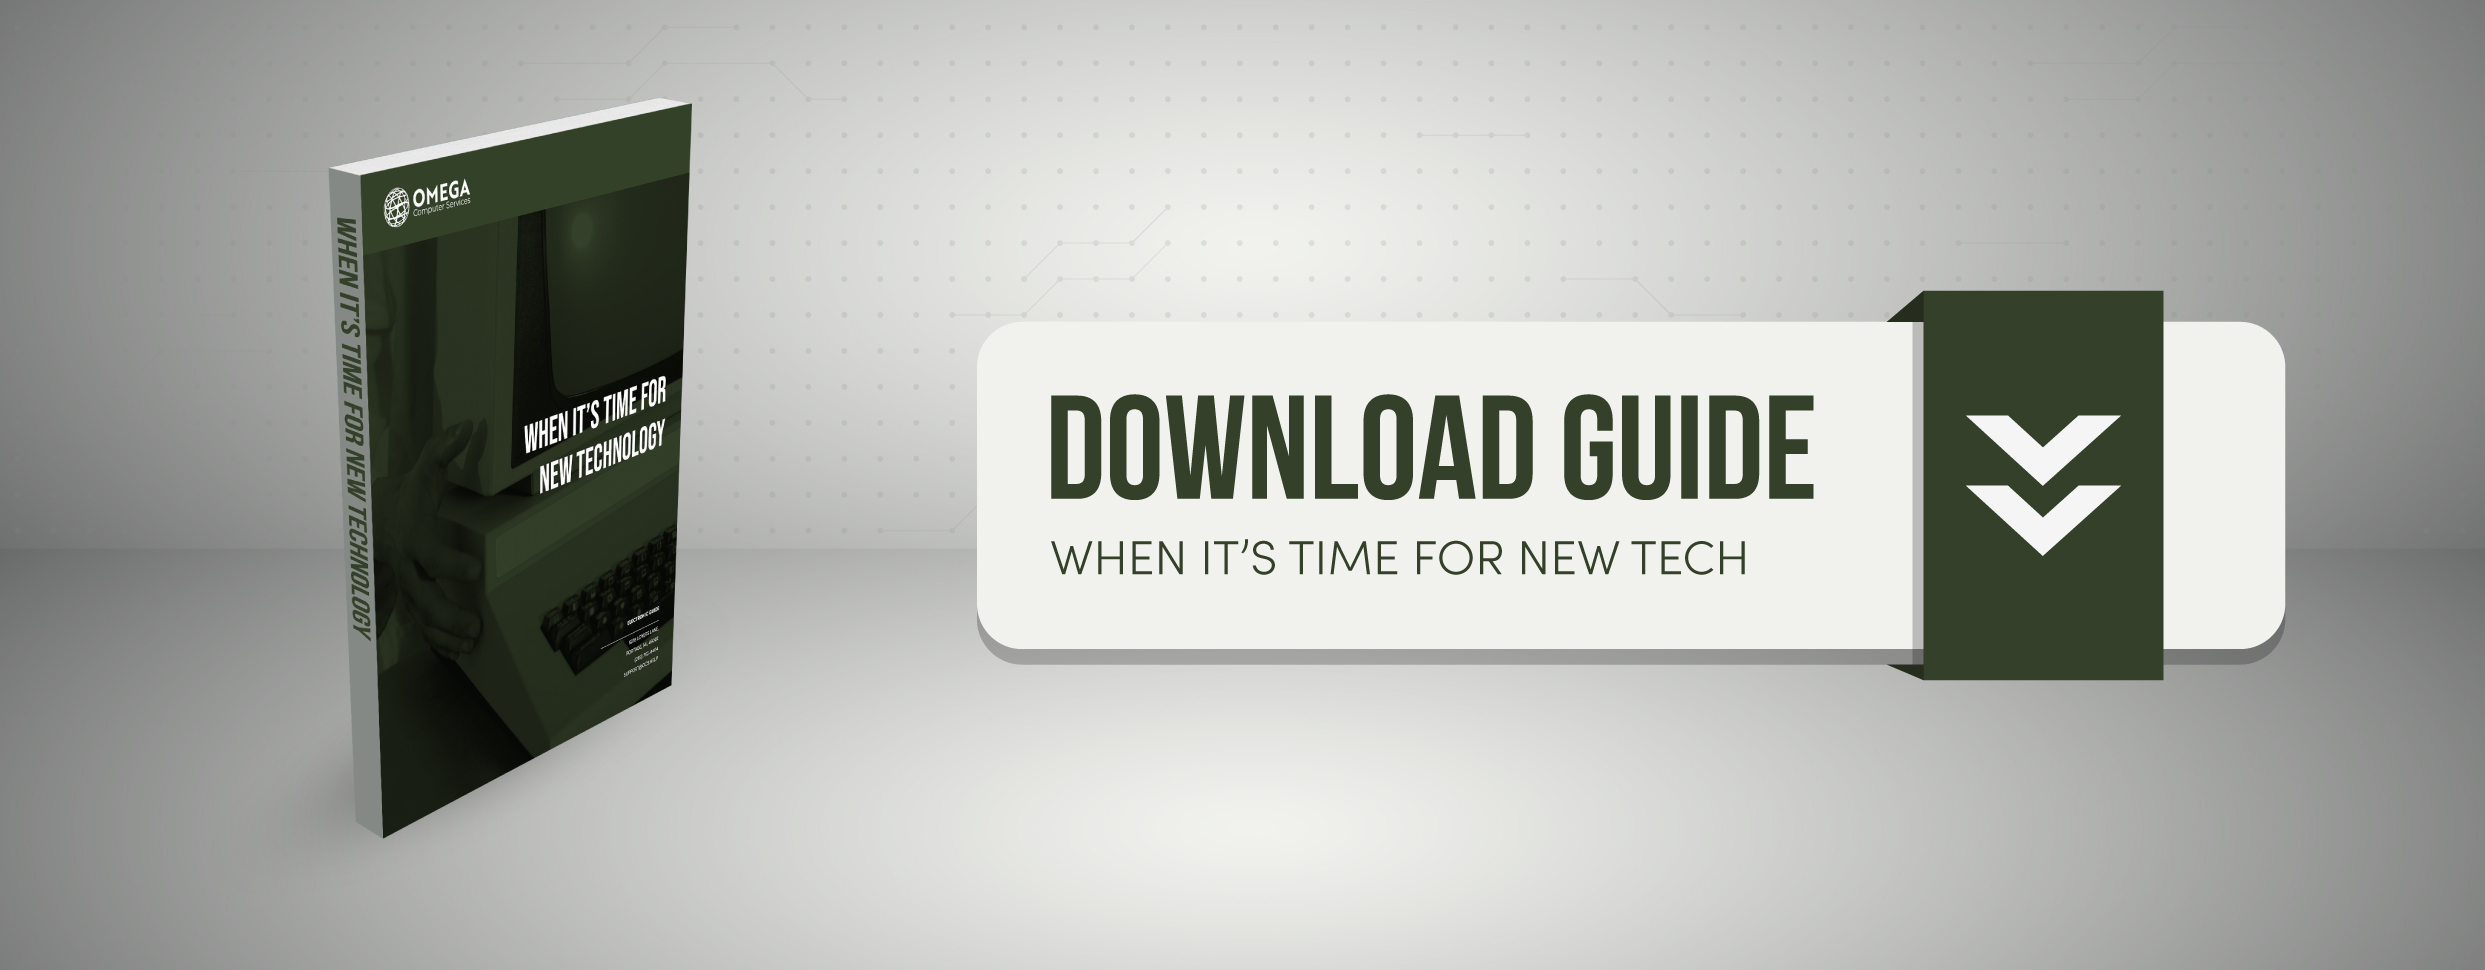 New technology guide. When it's time for new technology guide.